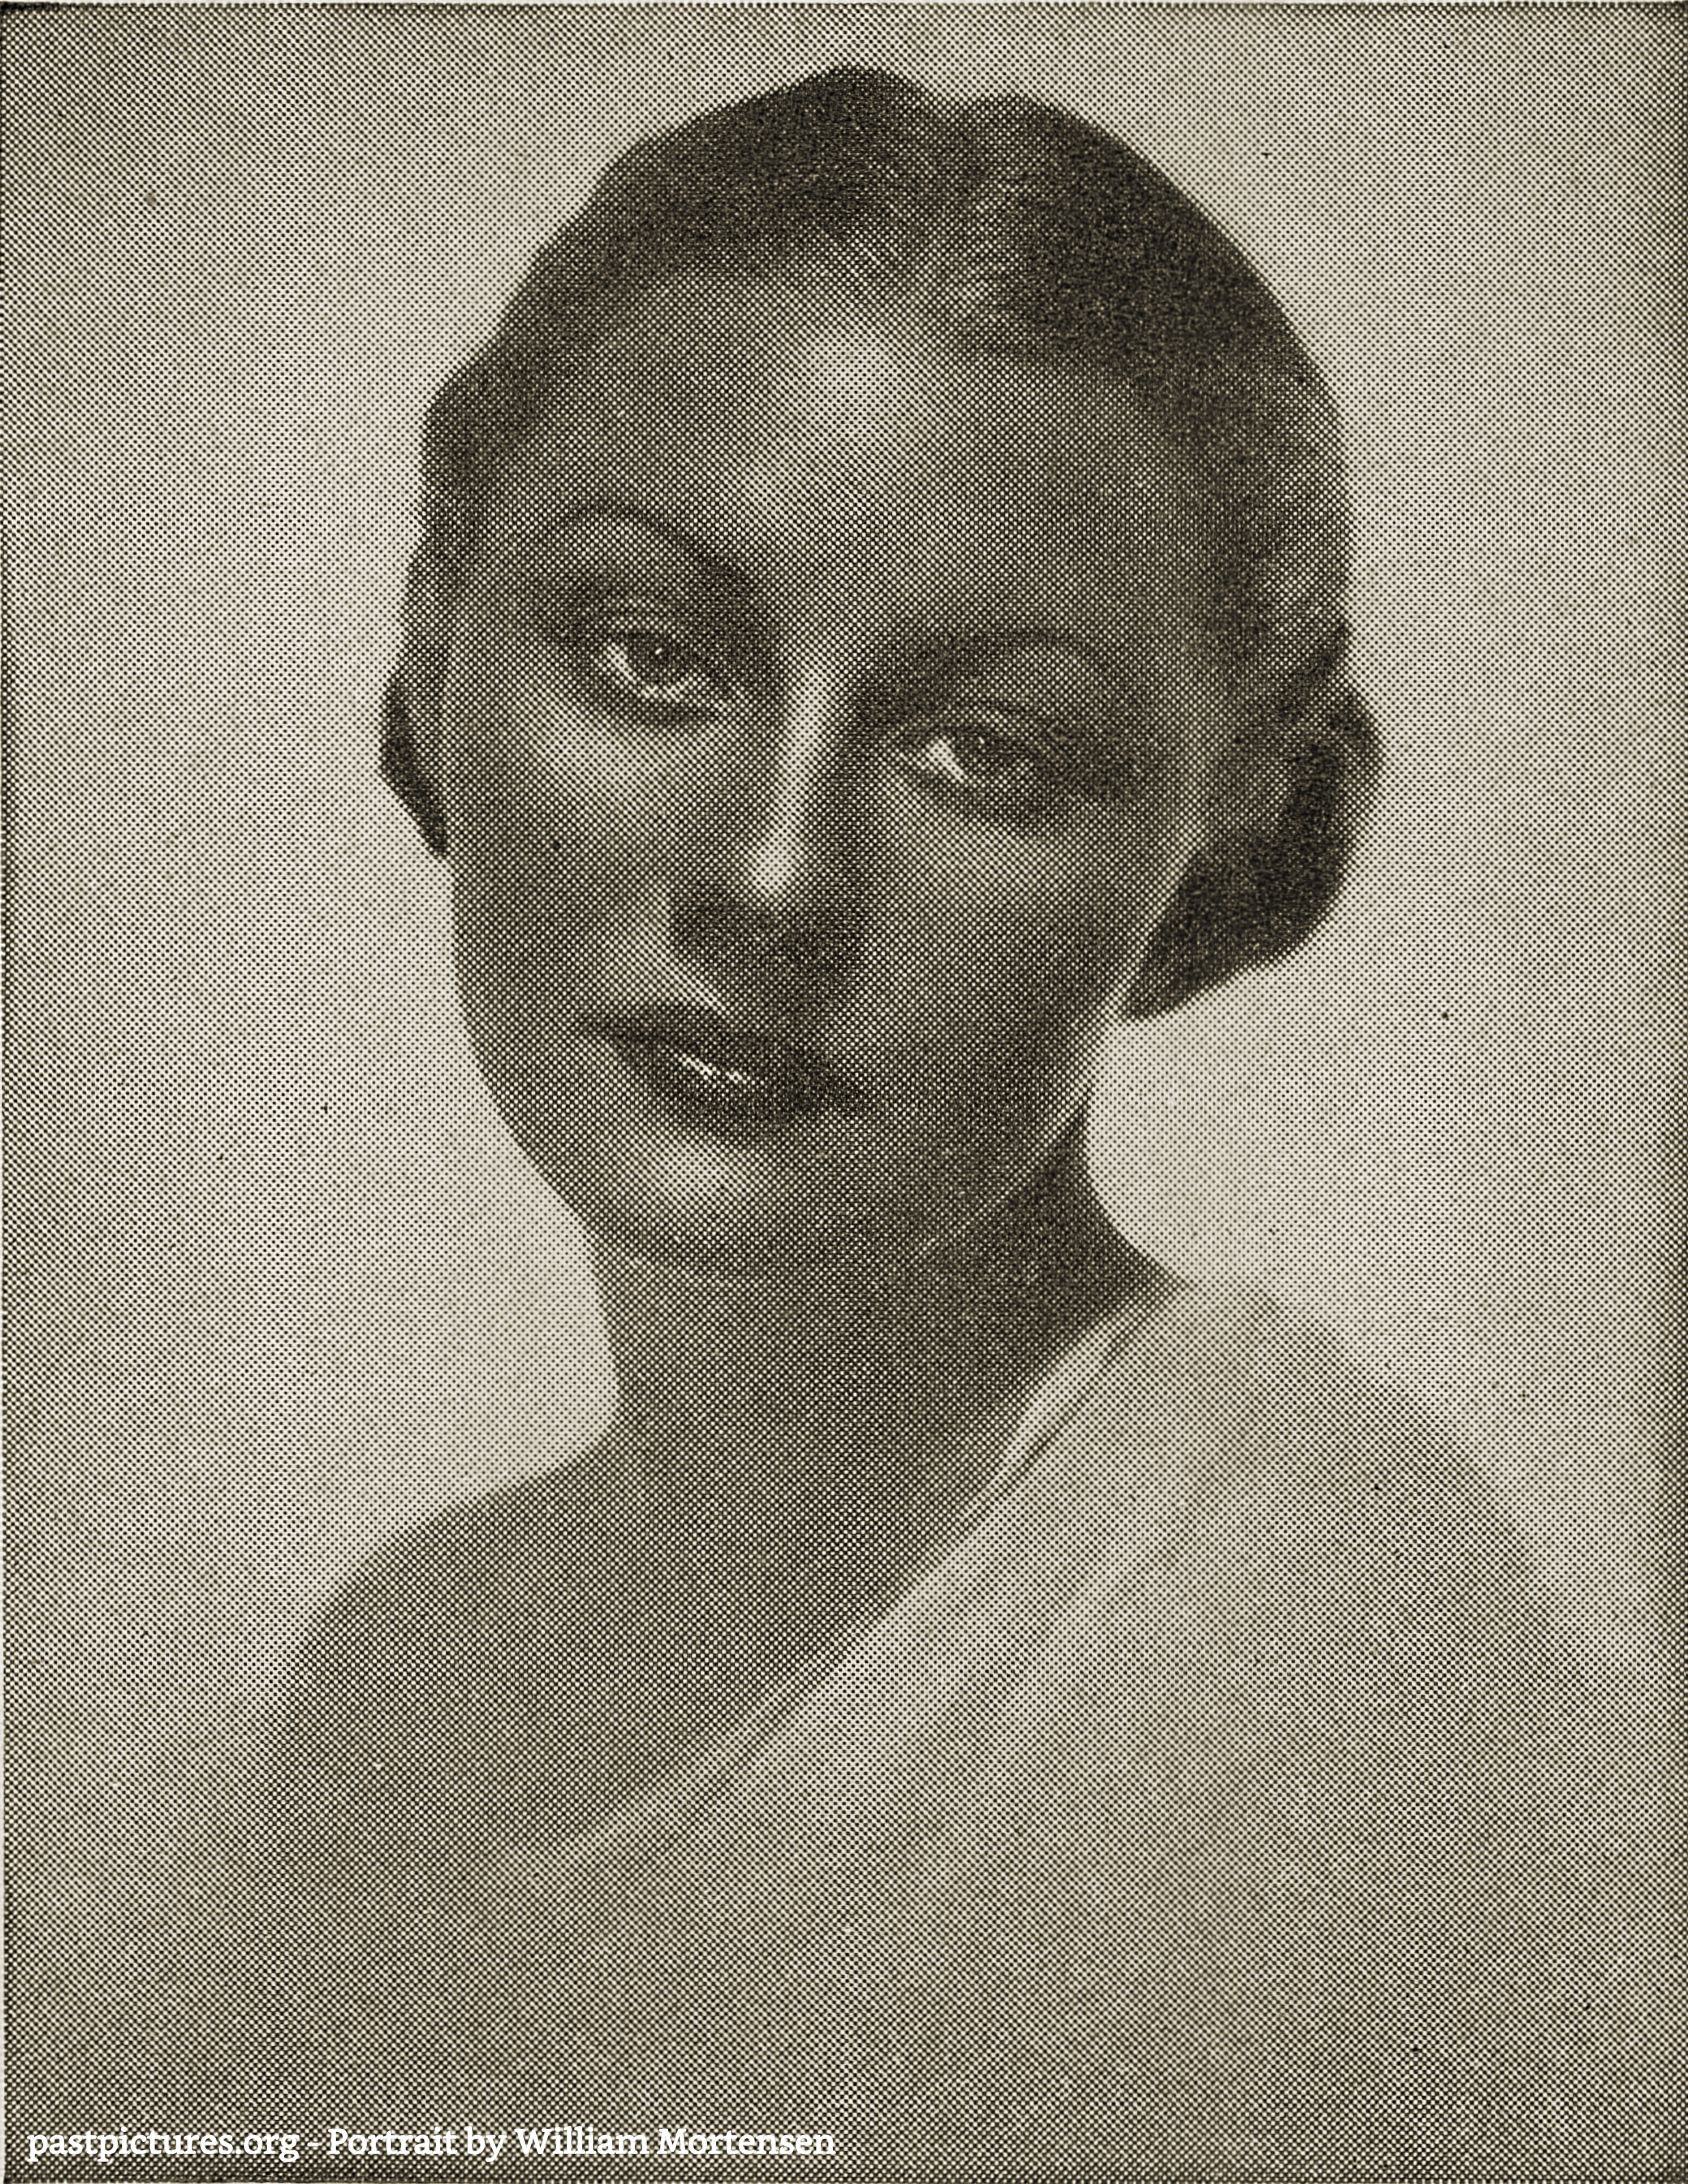 Portrait by William Mortensen about 1930